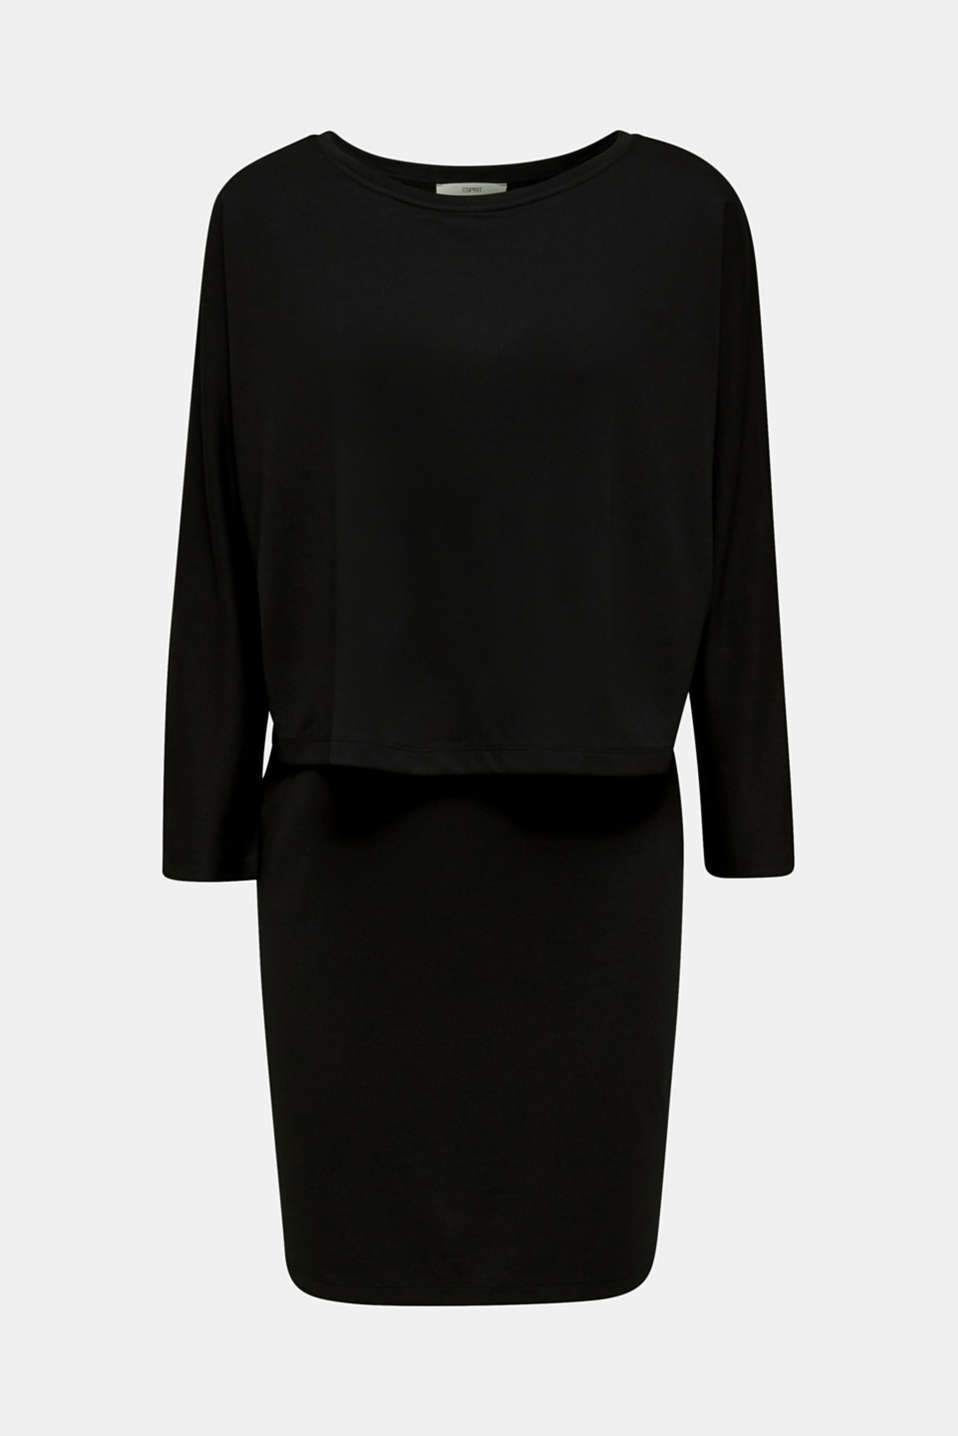 Stretch jersey dress in a layered look, BLACK, detail image number 5